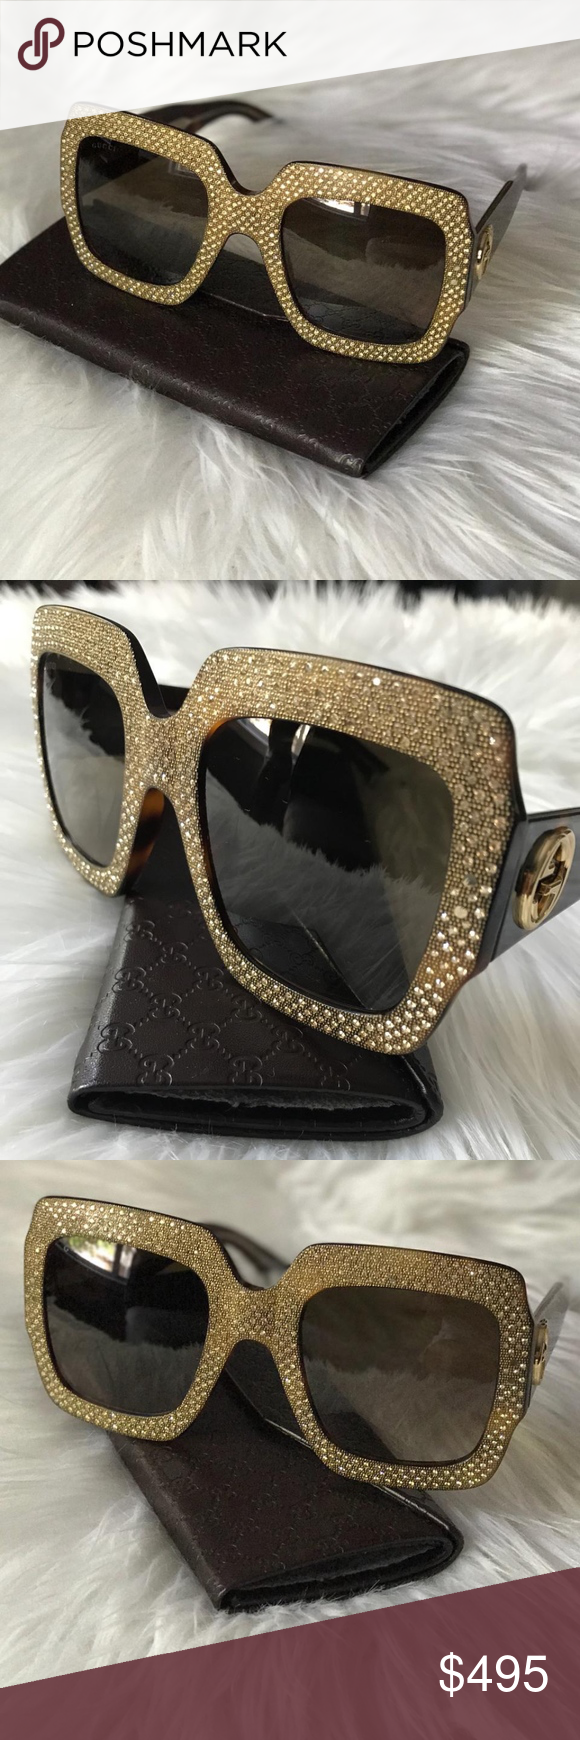 1e26cacd48e54 GUCCI Oversize Square Rhinestone Sunglasses GG3861 100% Authentic New Gucci  GG 3861 S Overssize